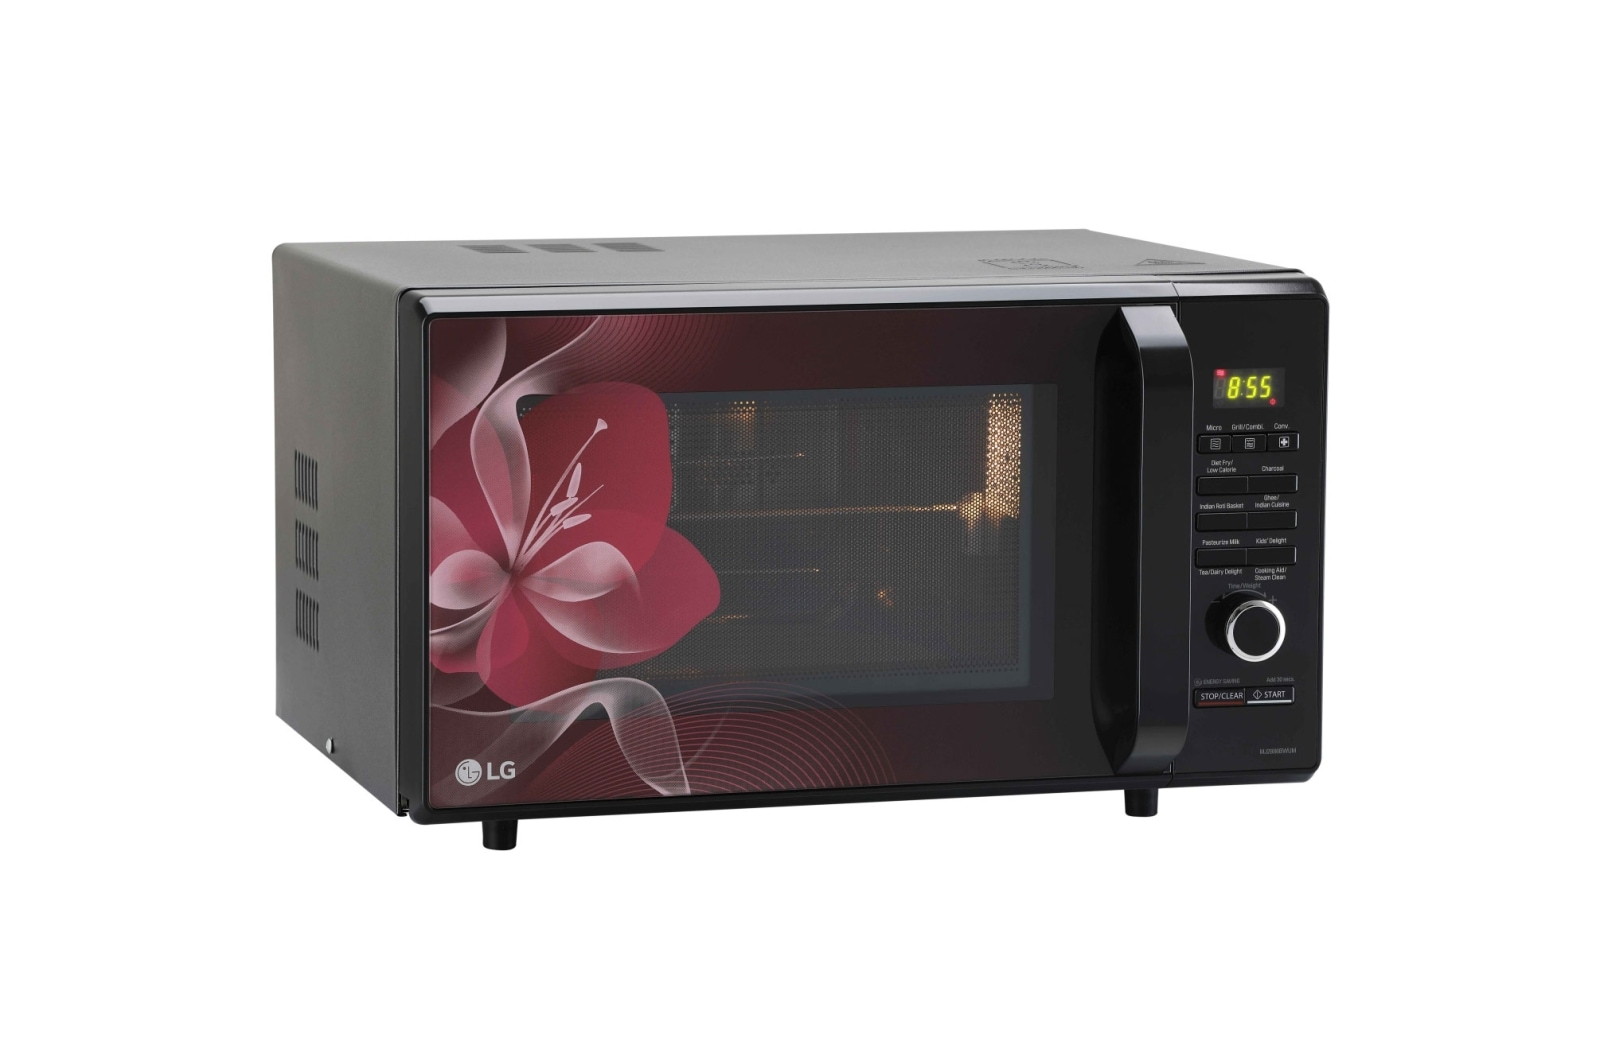 lg mj2886bwum all in one microwave oven with charcoal lighting rh lg com LG Dryer Parts LG Dishwasher Parts